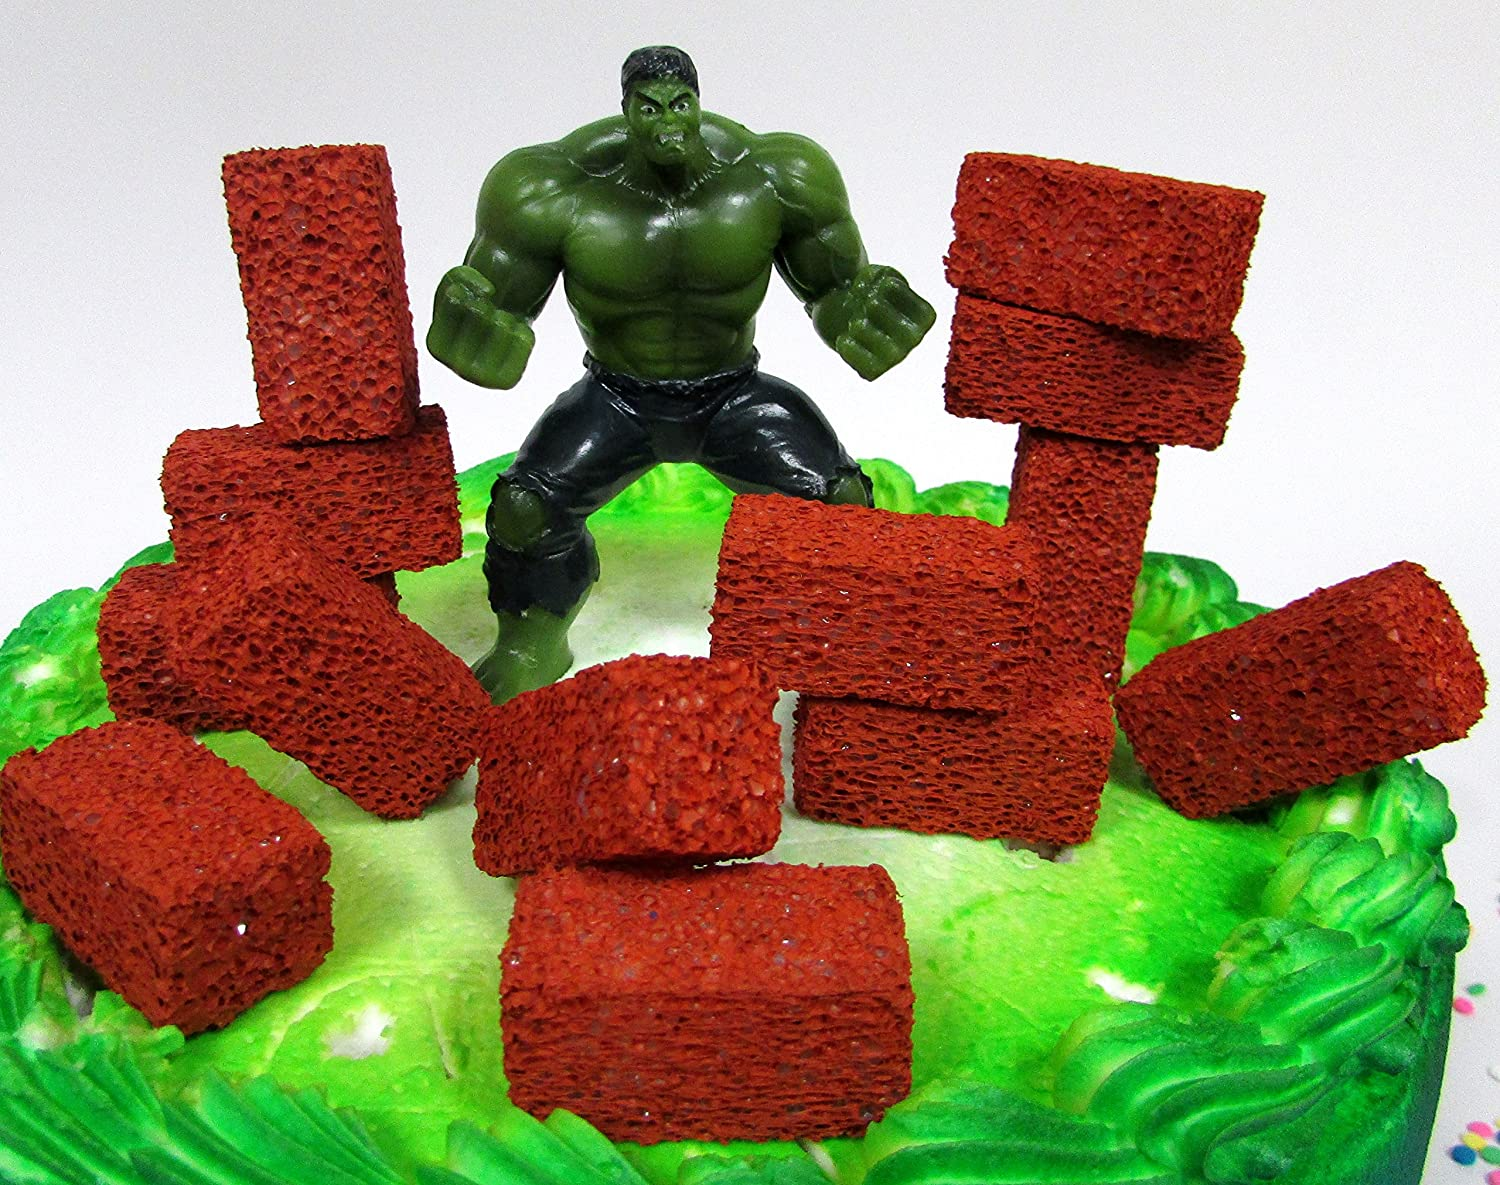 Amazon.com: Super Hero Avengers increíble Hulk torta de ...